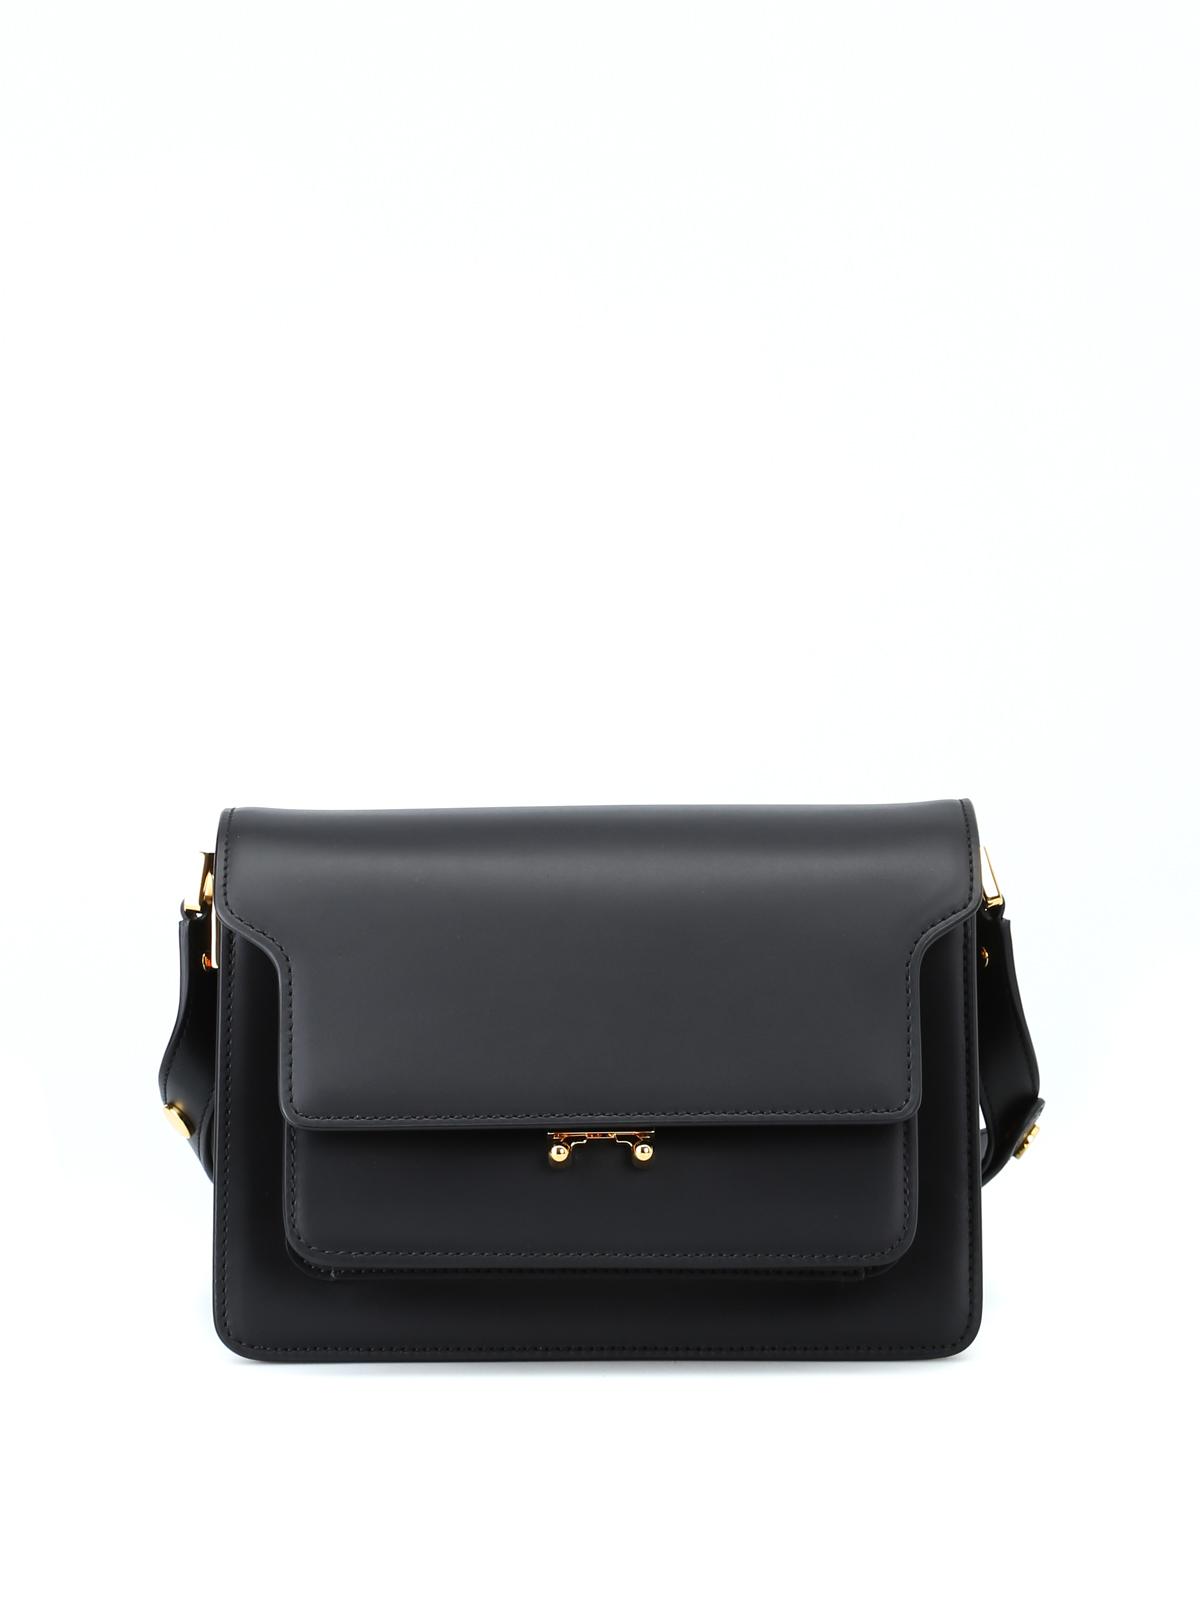 Marni TRUNK BLACK SMOOTH LEATHER BAG